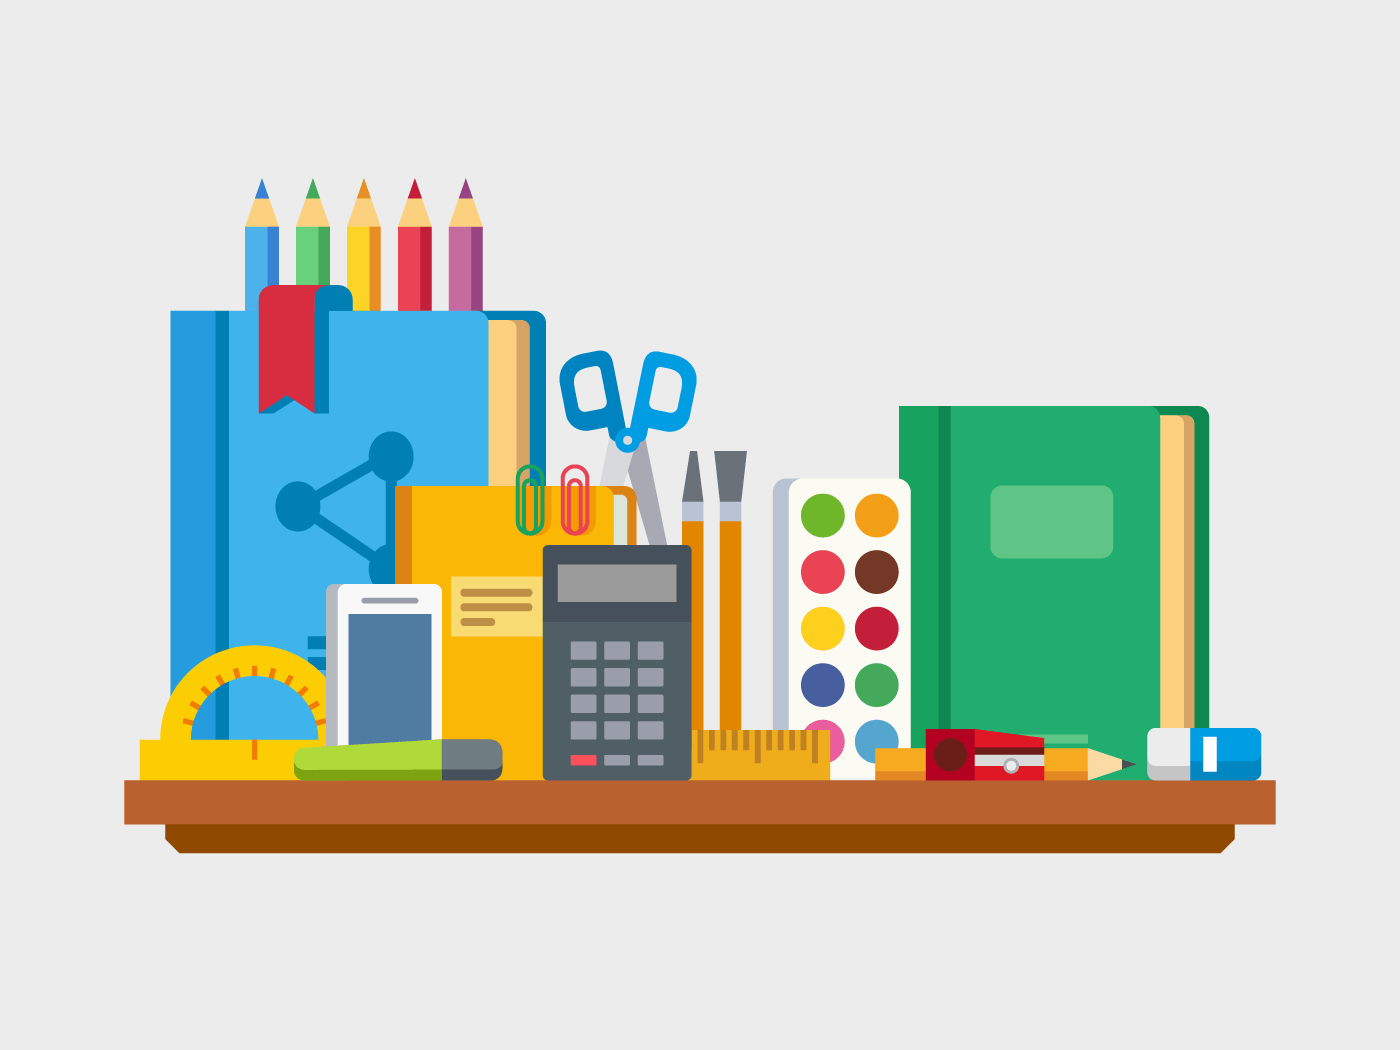 School, education items on table vector illustration